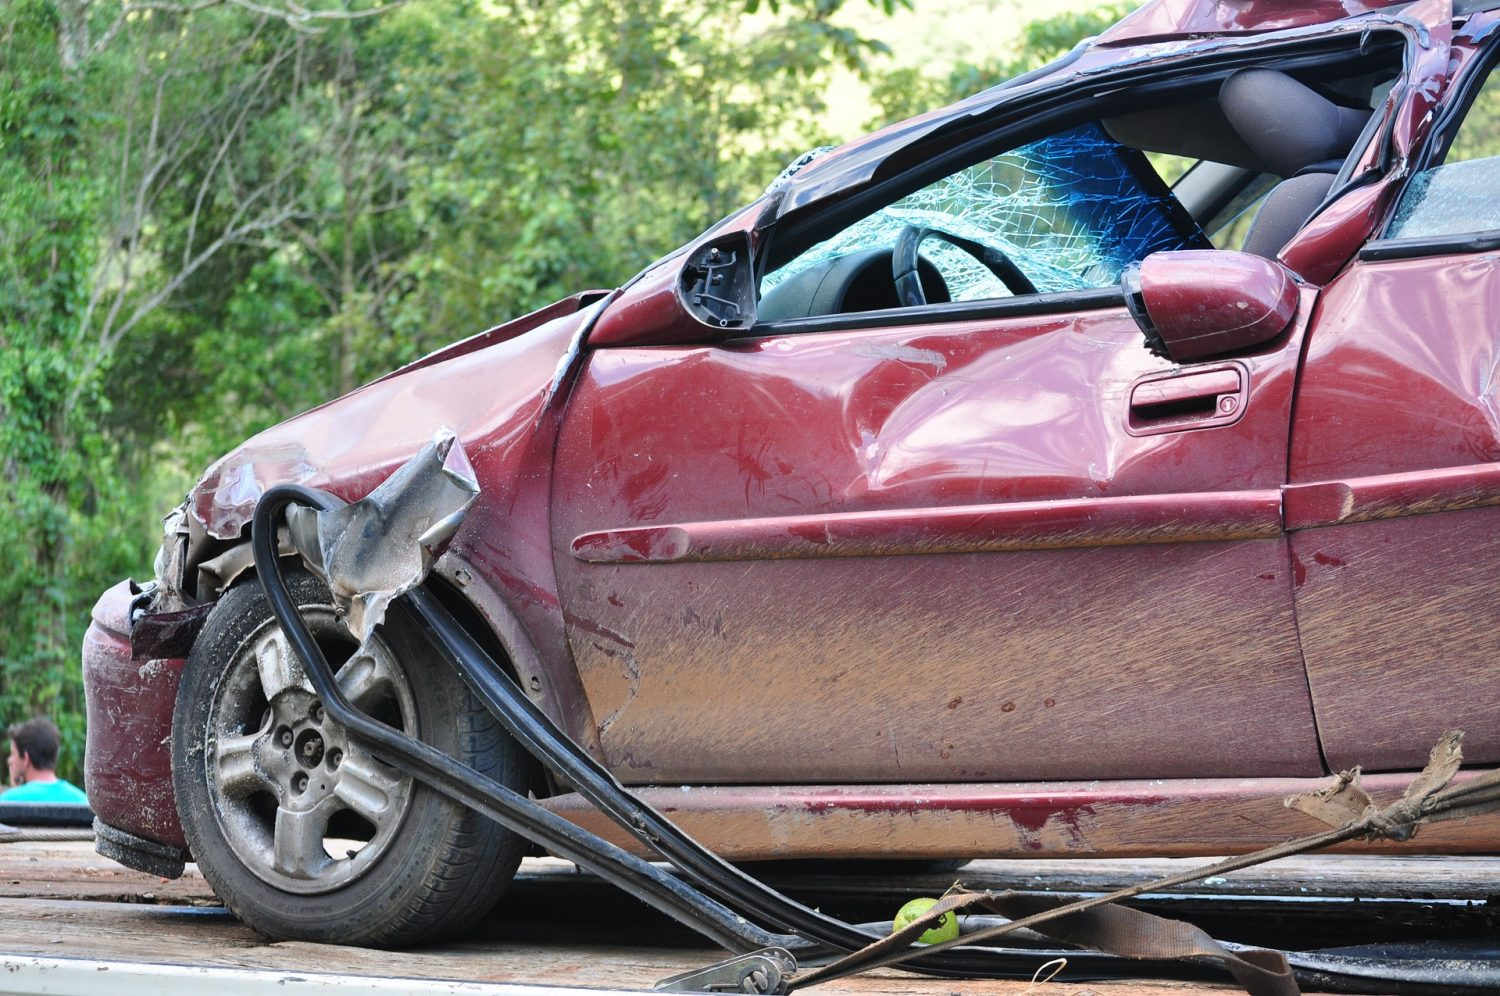 Shell Beach, CA - Four Injured in Six-Vehicle Crash on Highway 101